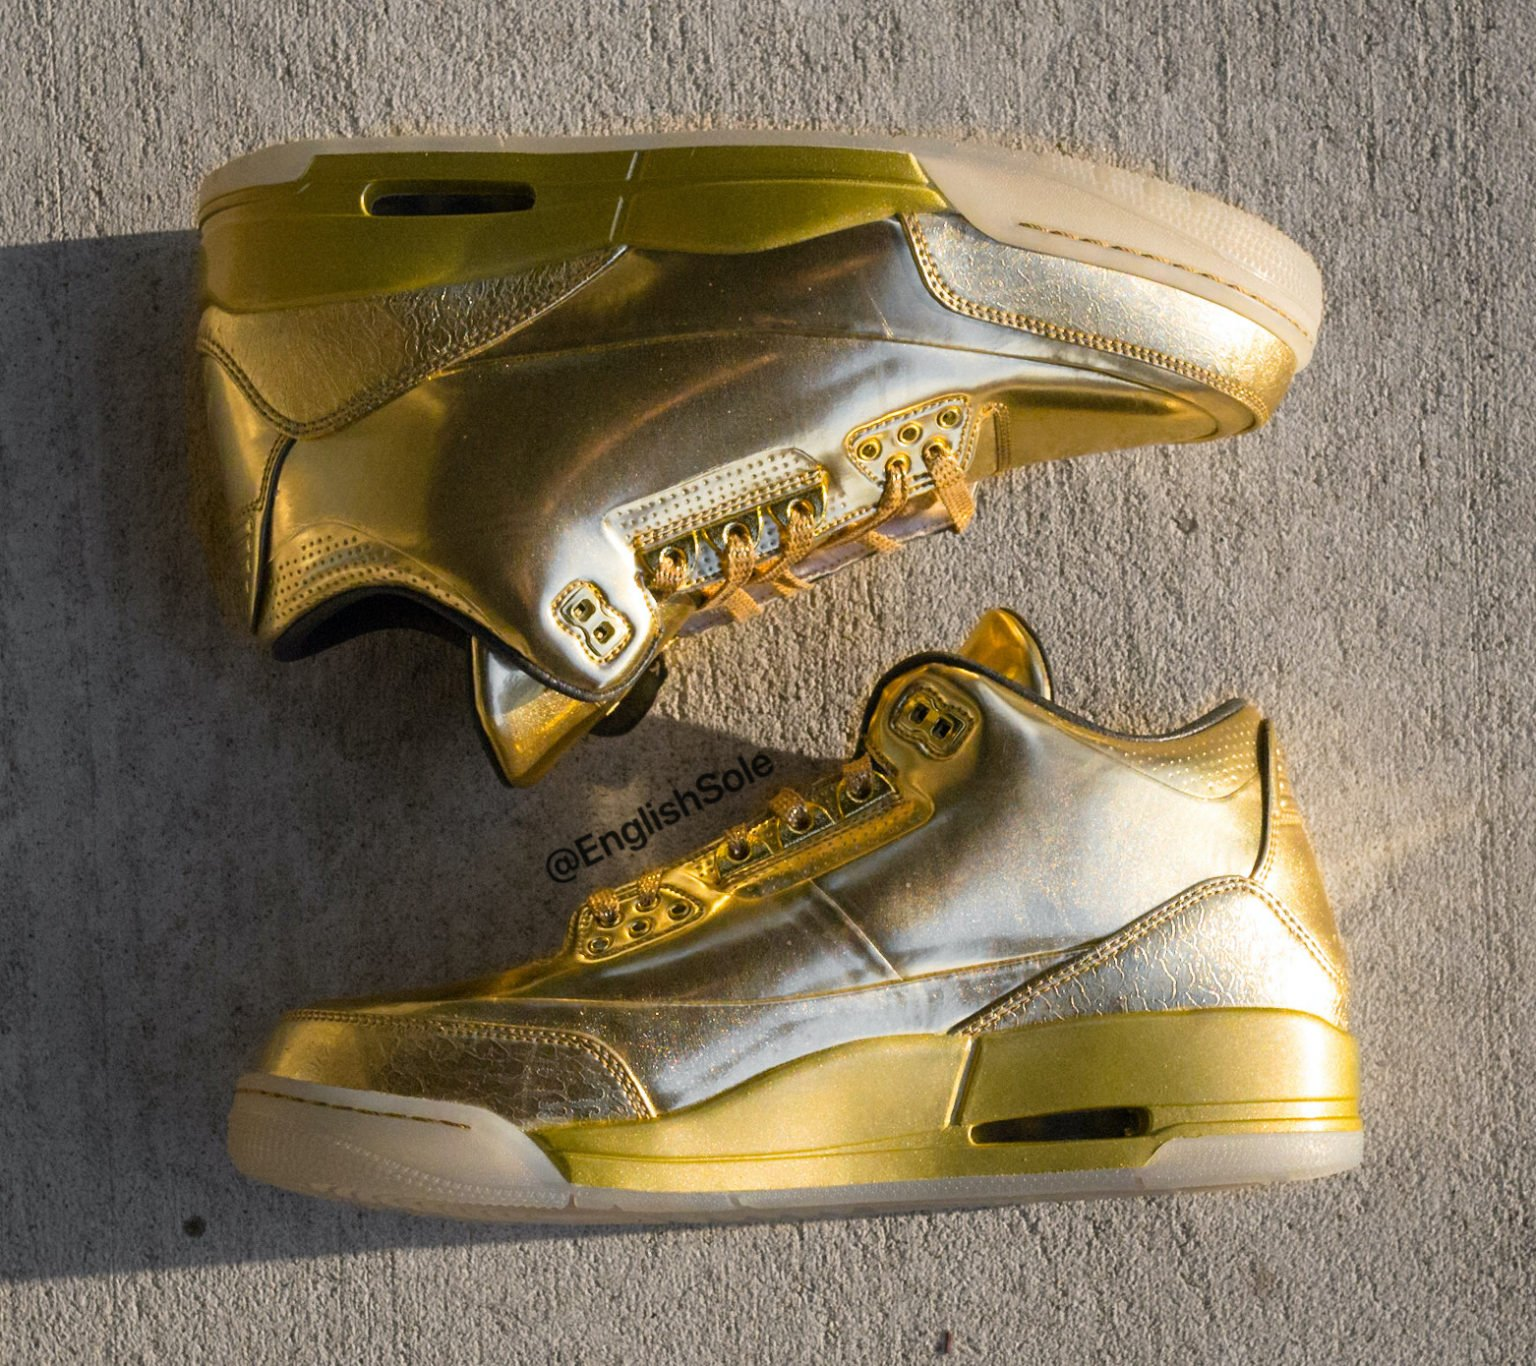 Usher Air Jordan 3 Gold Sample